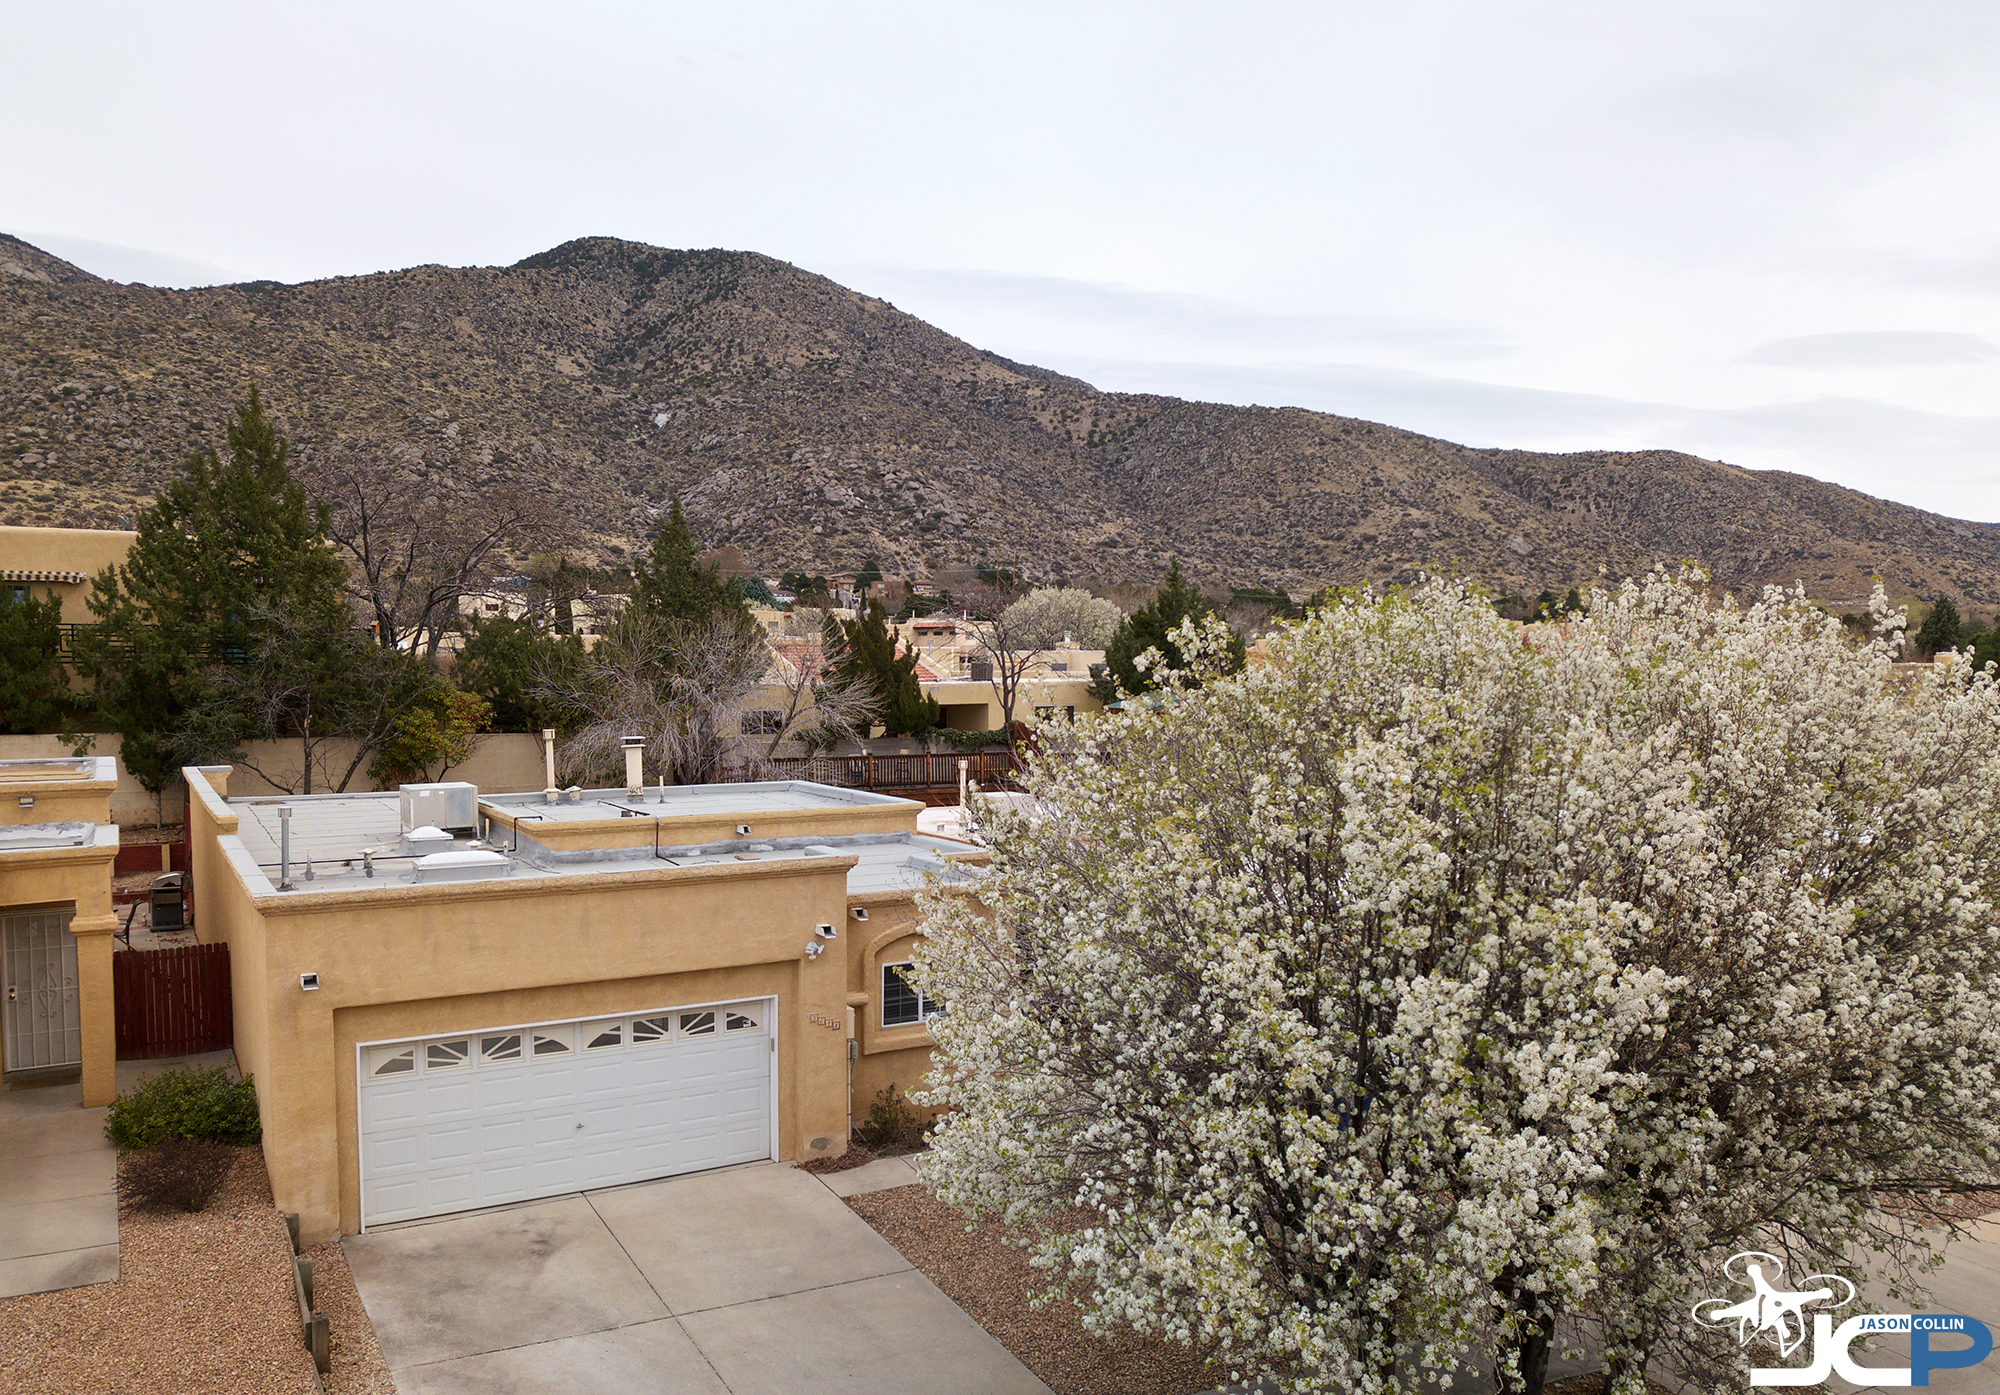 Aerial drone photo of residential real estate in Albuquerque New Mexico - DJI Mavic Pro with PolarPro filter N8